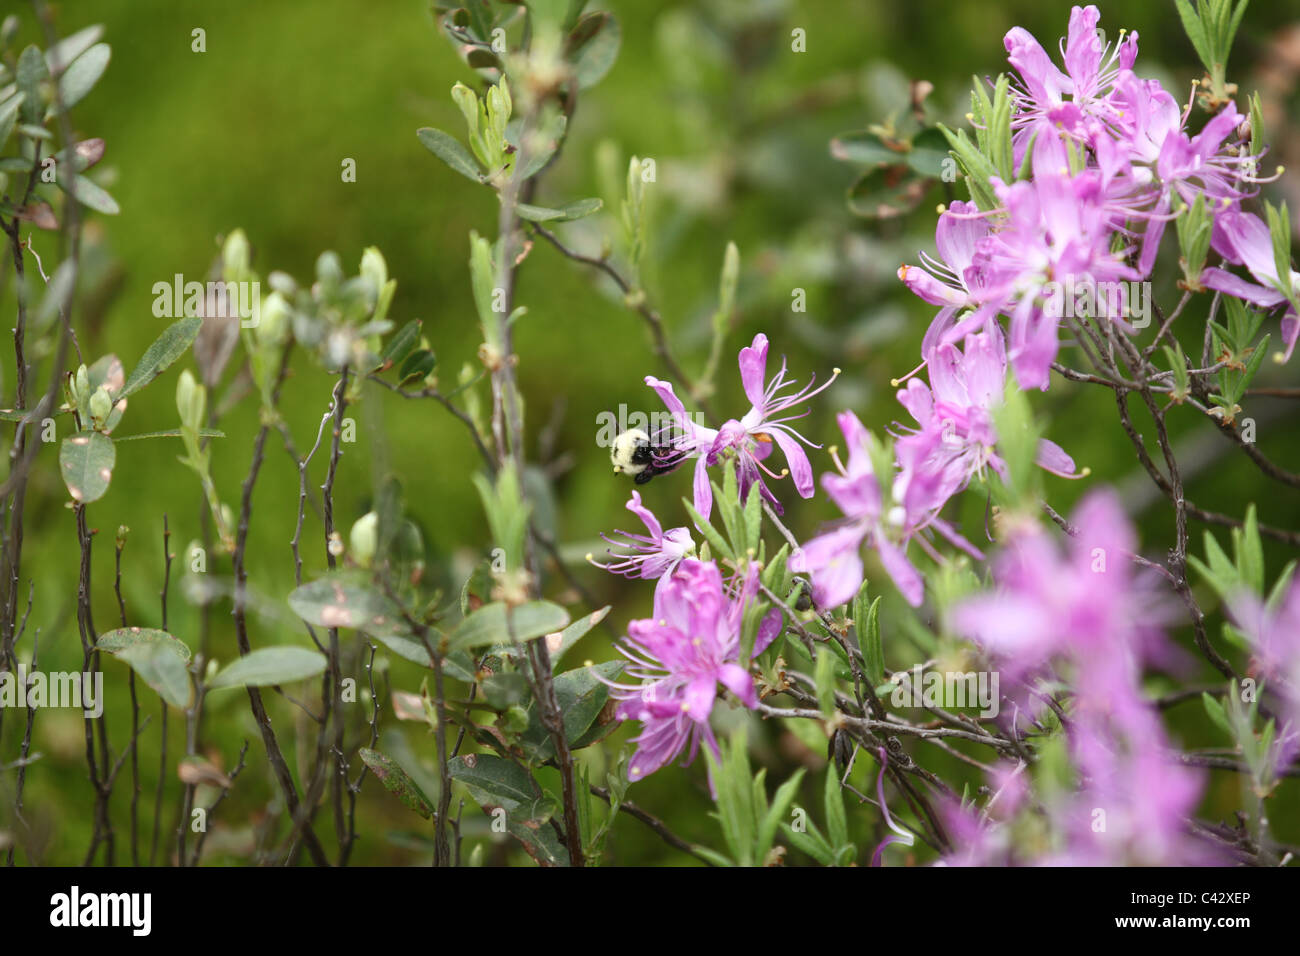 Bumble bee on tiny purple flowers Stock Photo